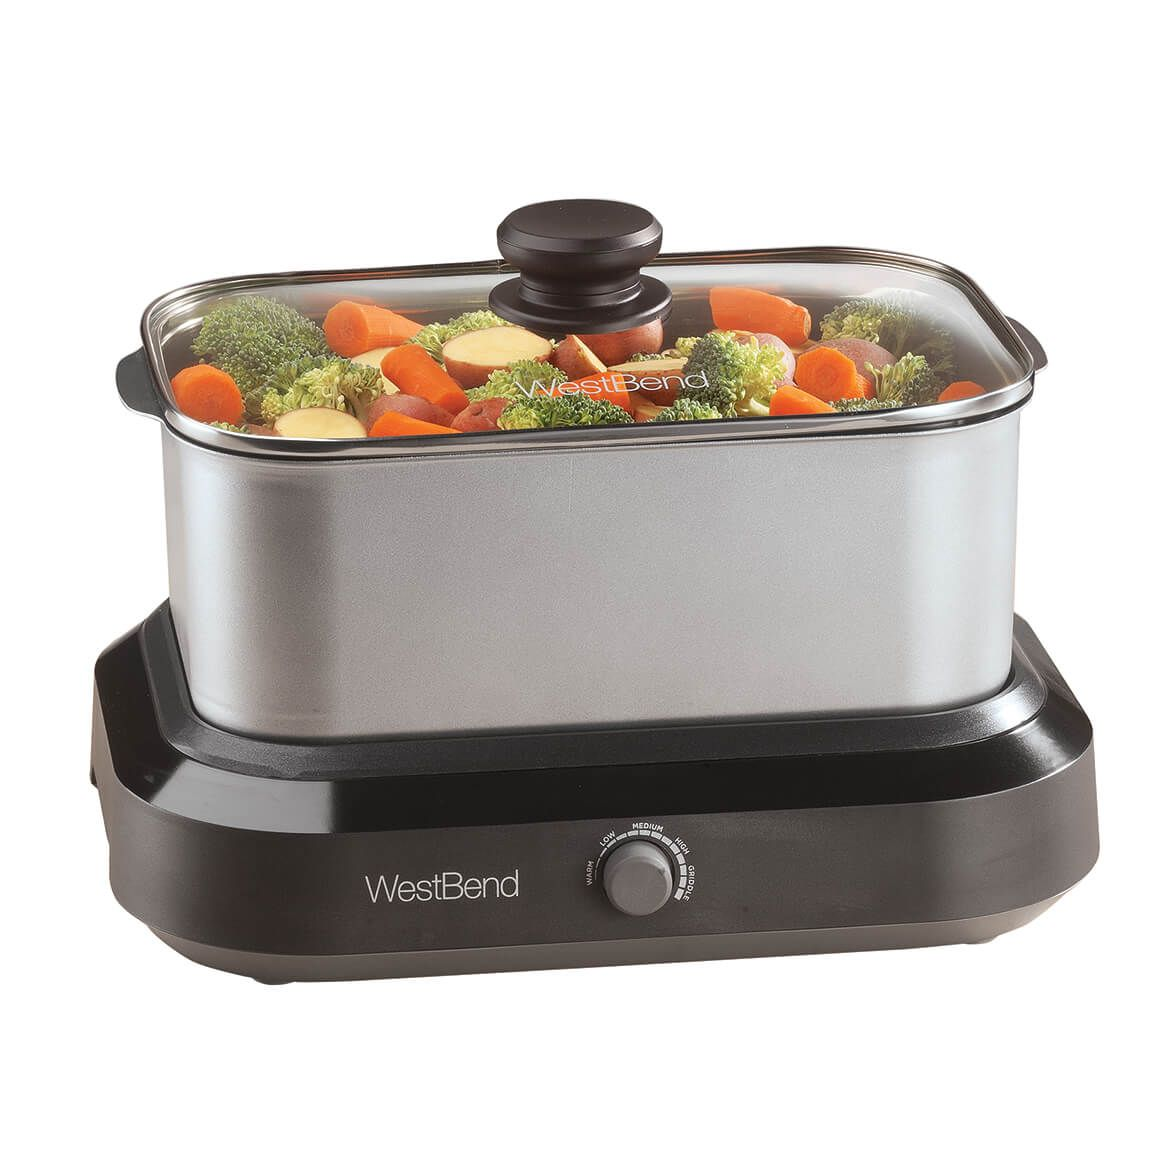 West Bend® 5 Qt. Versatility Cooker™ Stainless Steel-363834